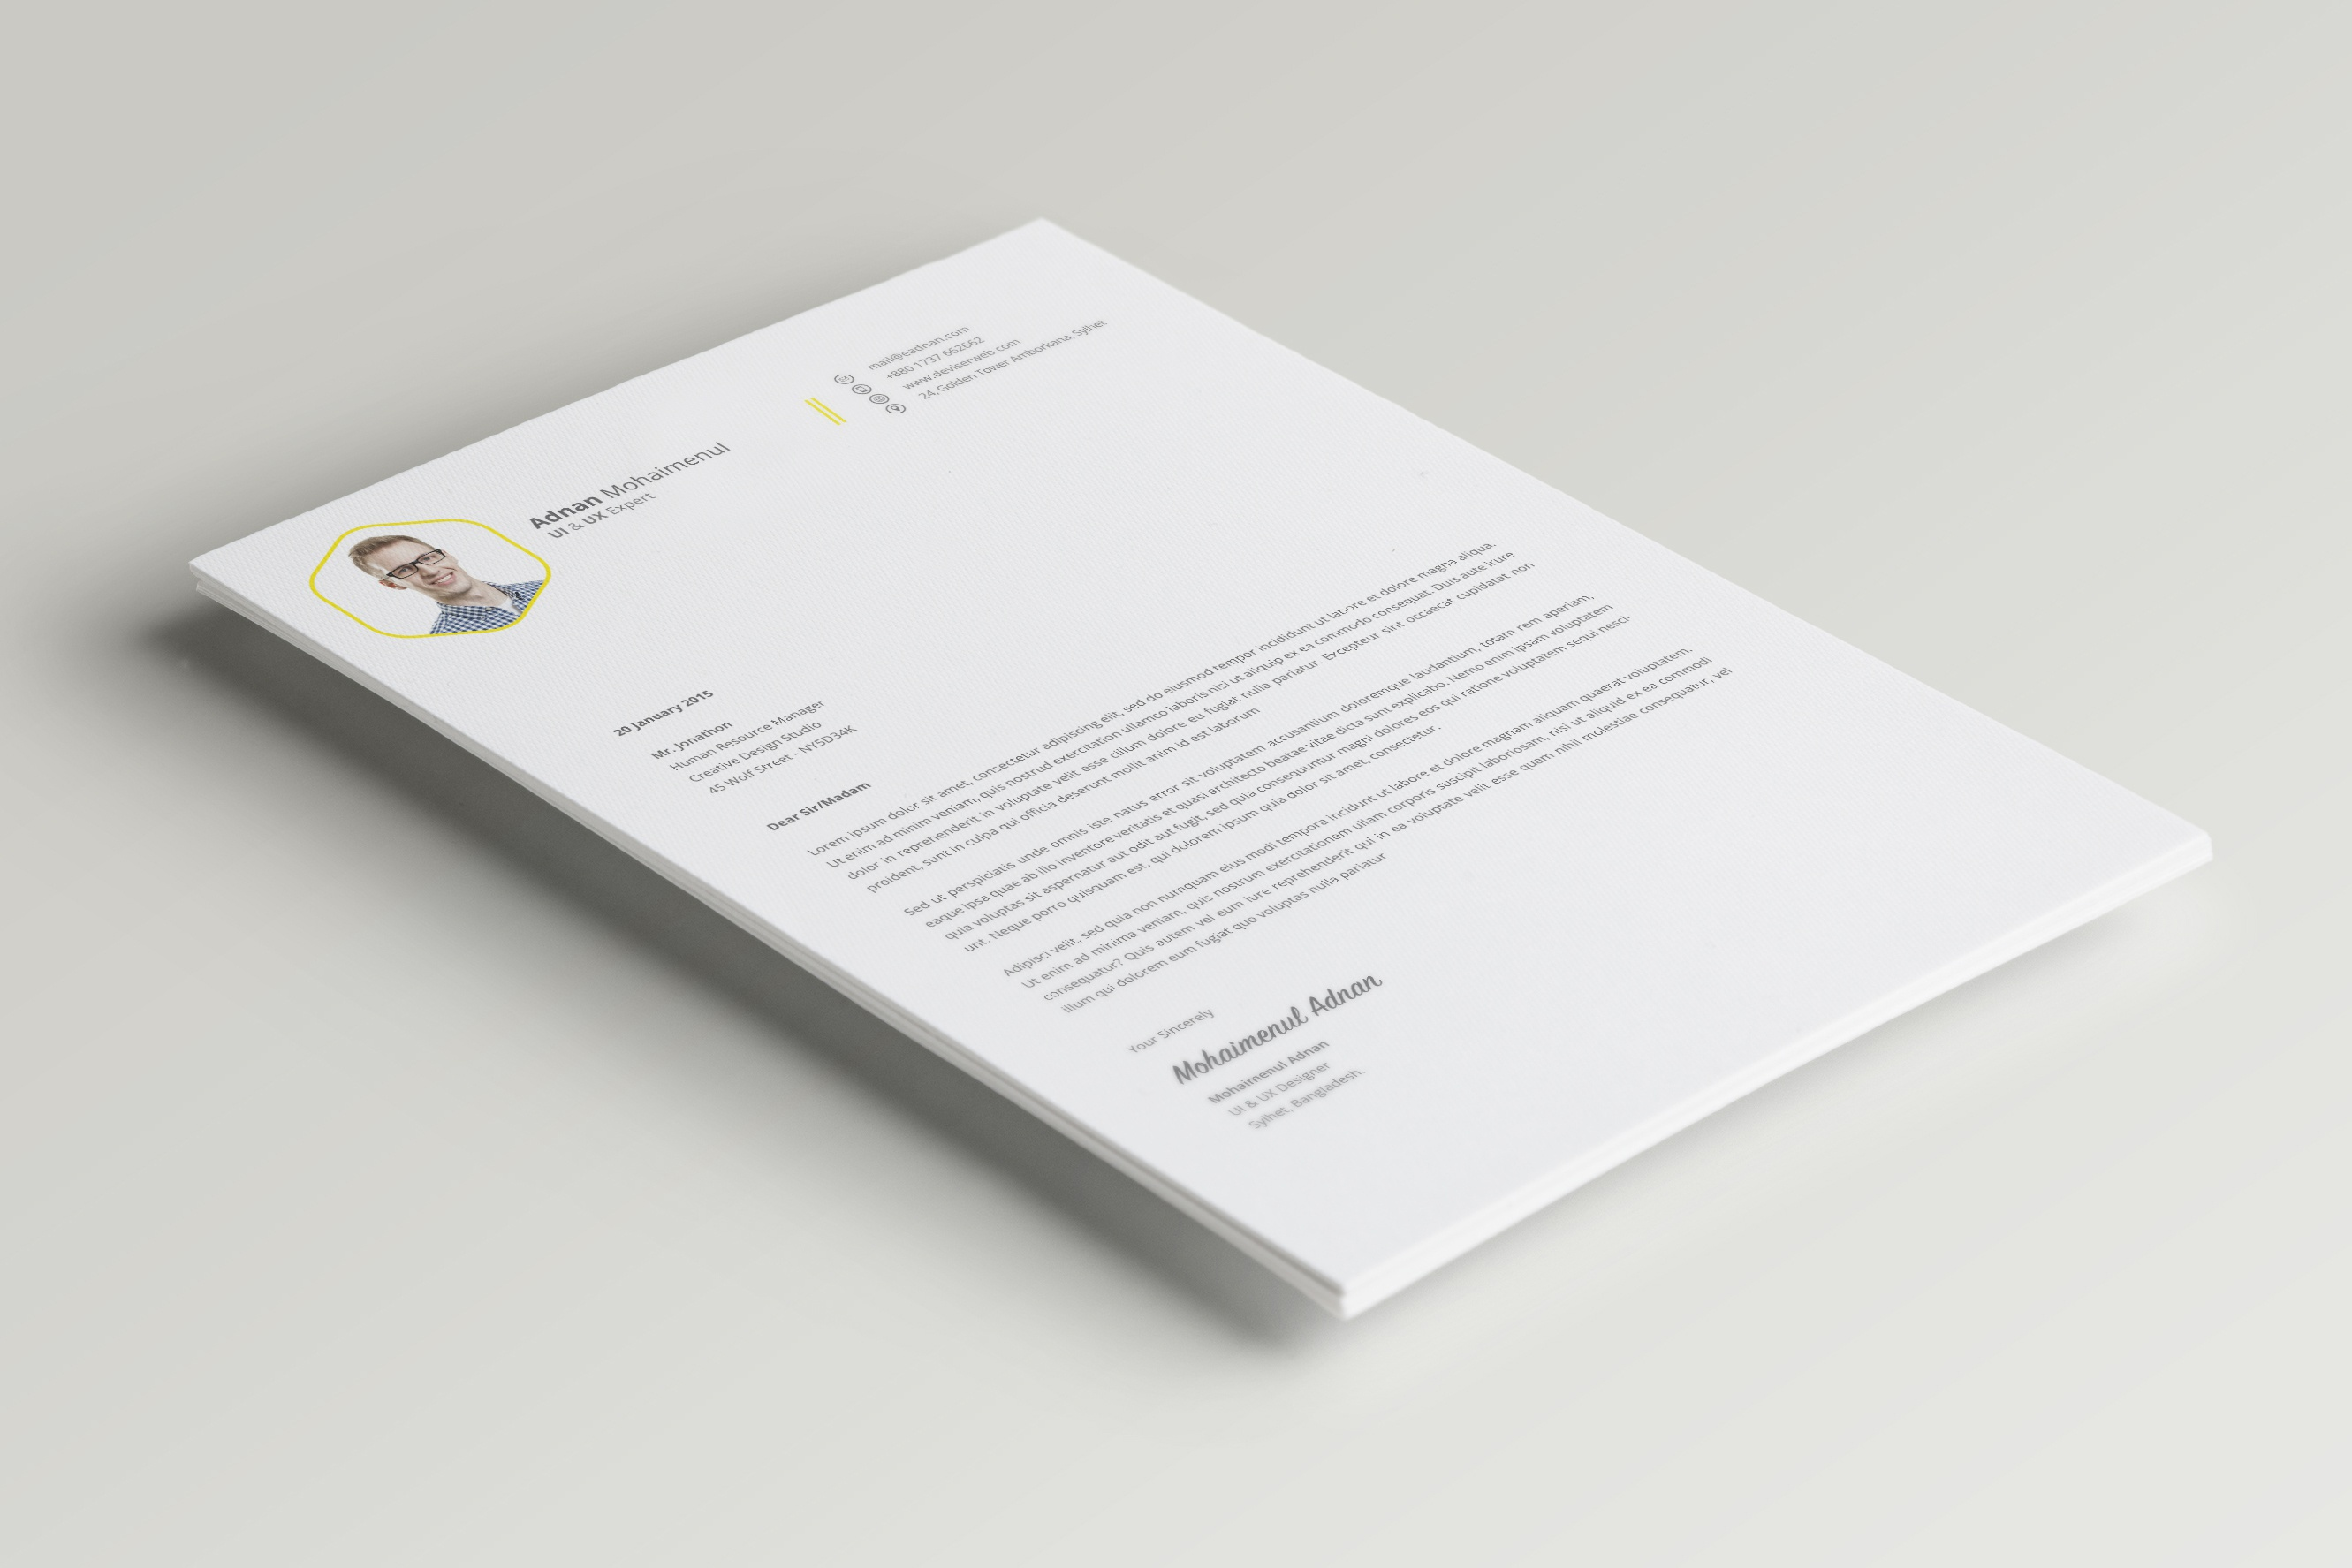 03 Cv Resume Cover Letter Psd Free Download Psdboom.com  Cover Lettercom